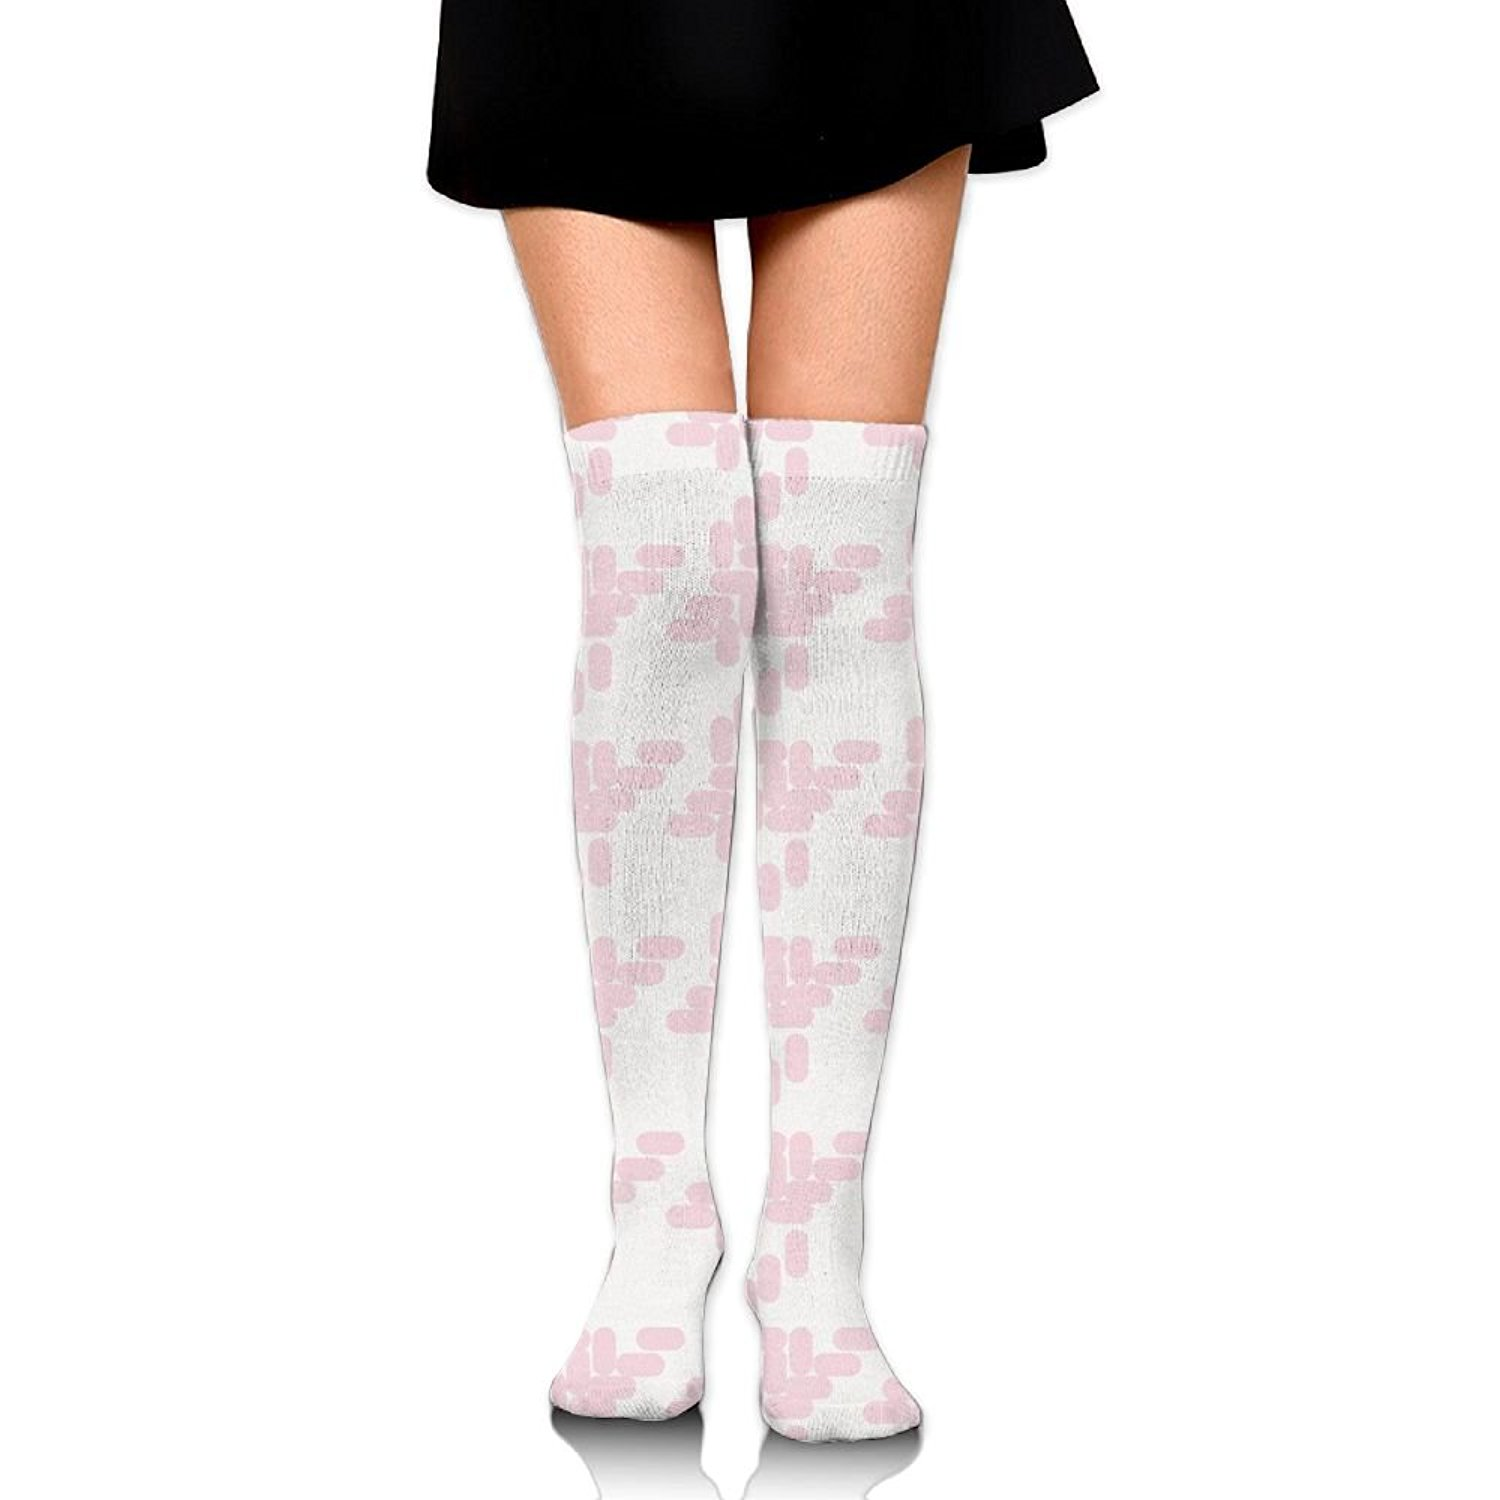 Zaqxsw Dandelion Women Unique Thigh High Socks Cotton Socks For Ladies